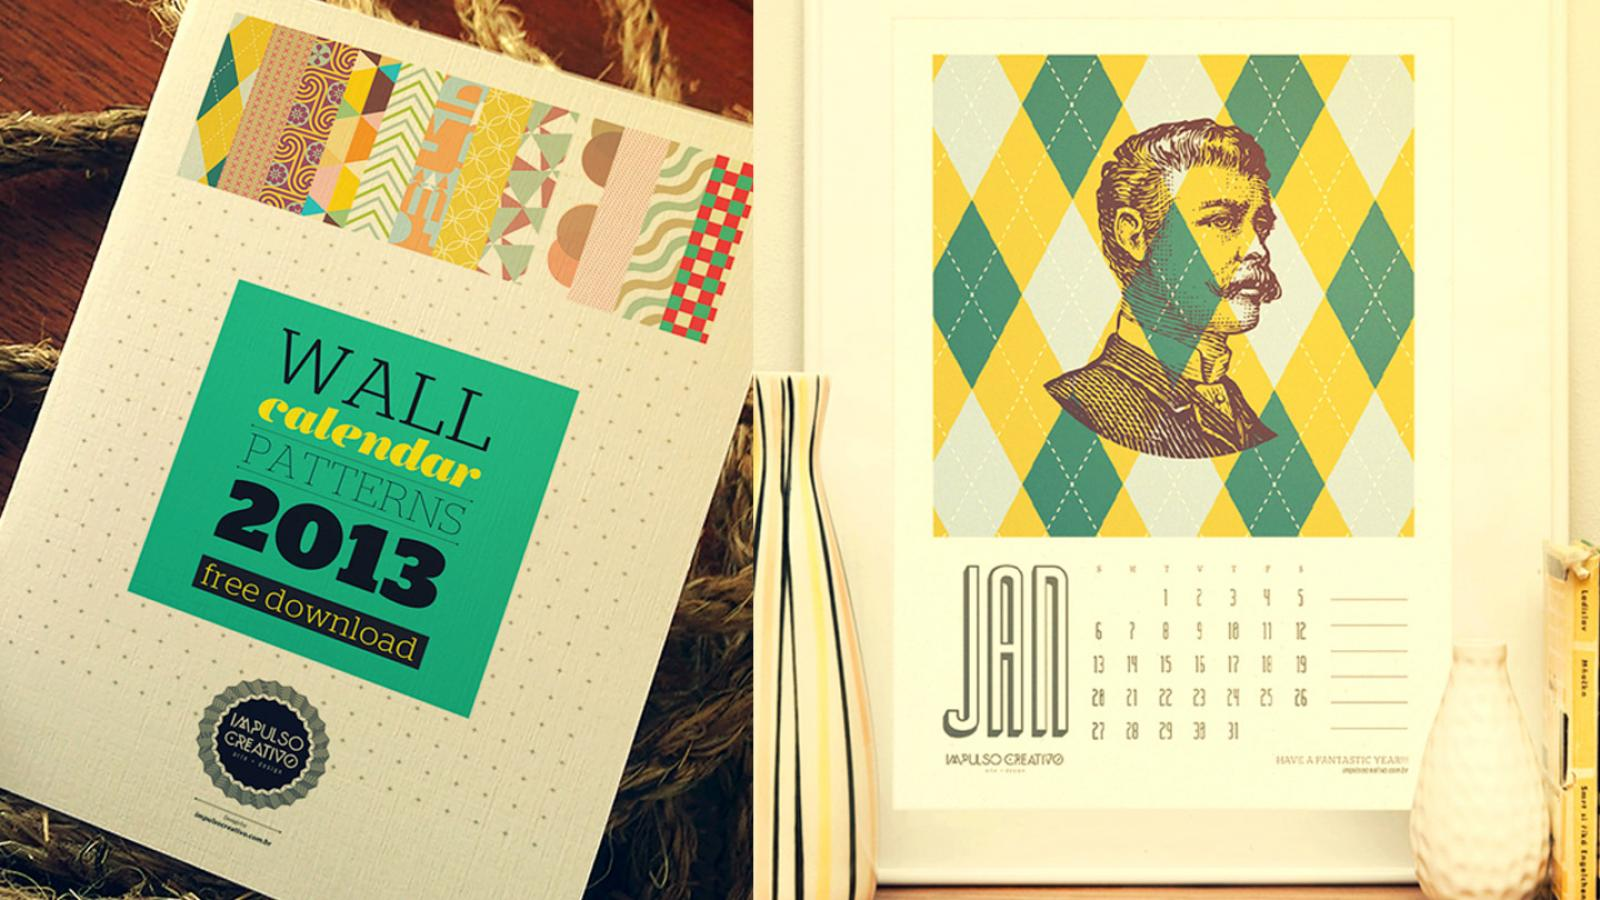 Free 2013 Calendar by Impulso Creativo